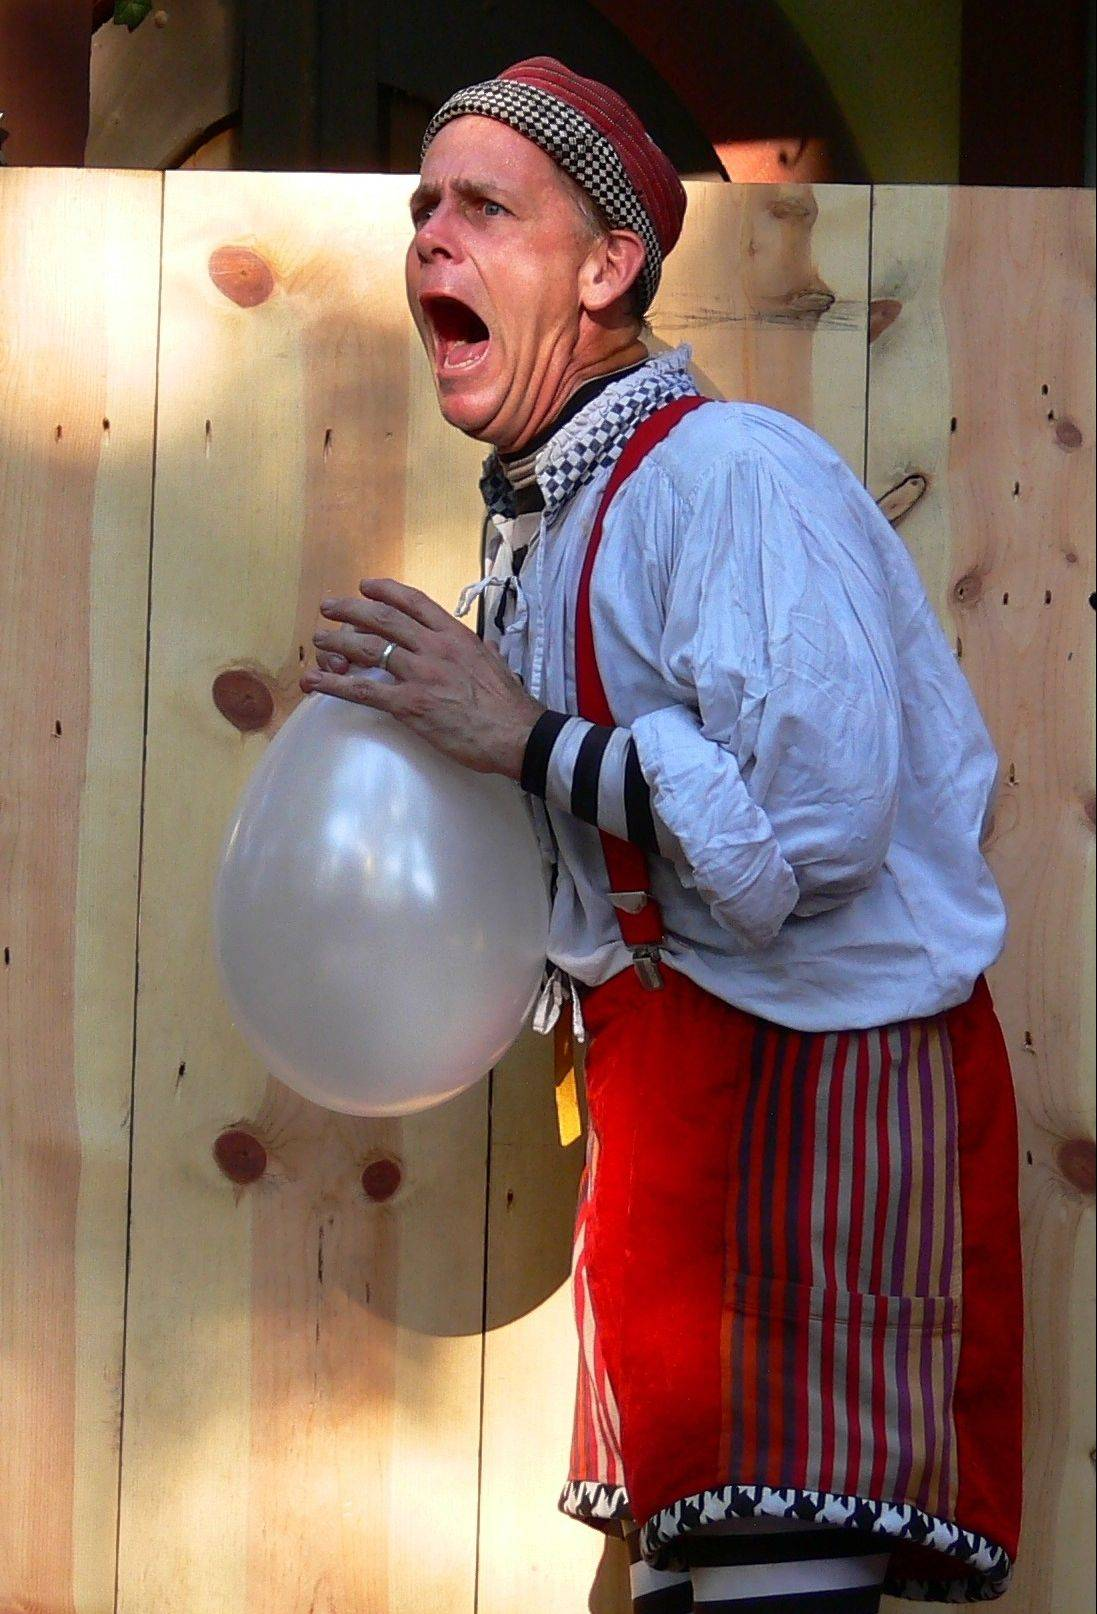 Phil Johnson of Mundelein combines juggling, balance, and comedy to enthrall crowds while performing as MooNiE the Magnif'Cent at the Bristol Renaissance Faire.